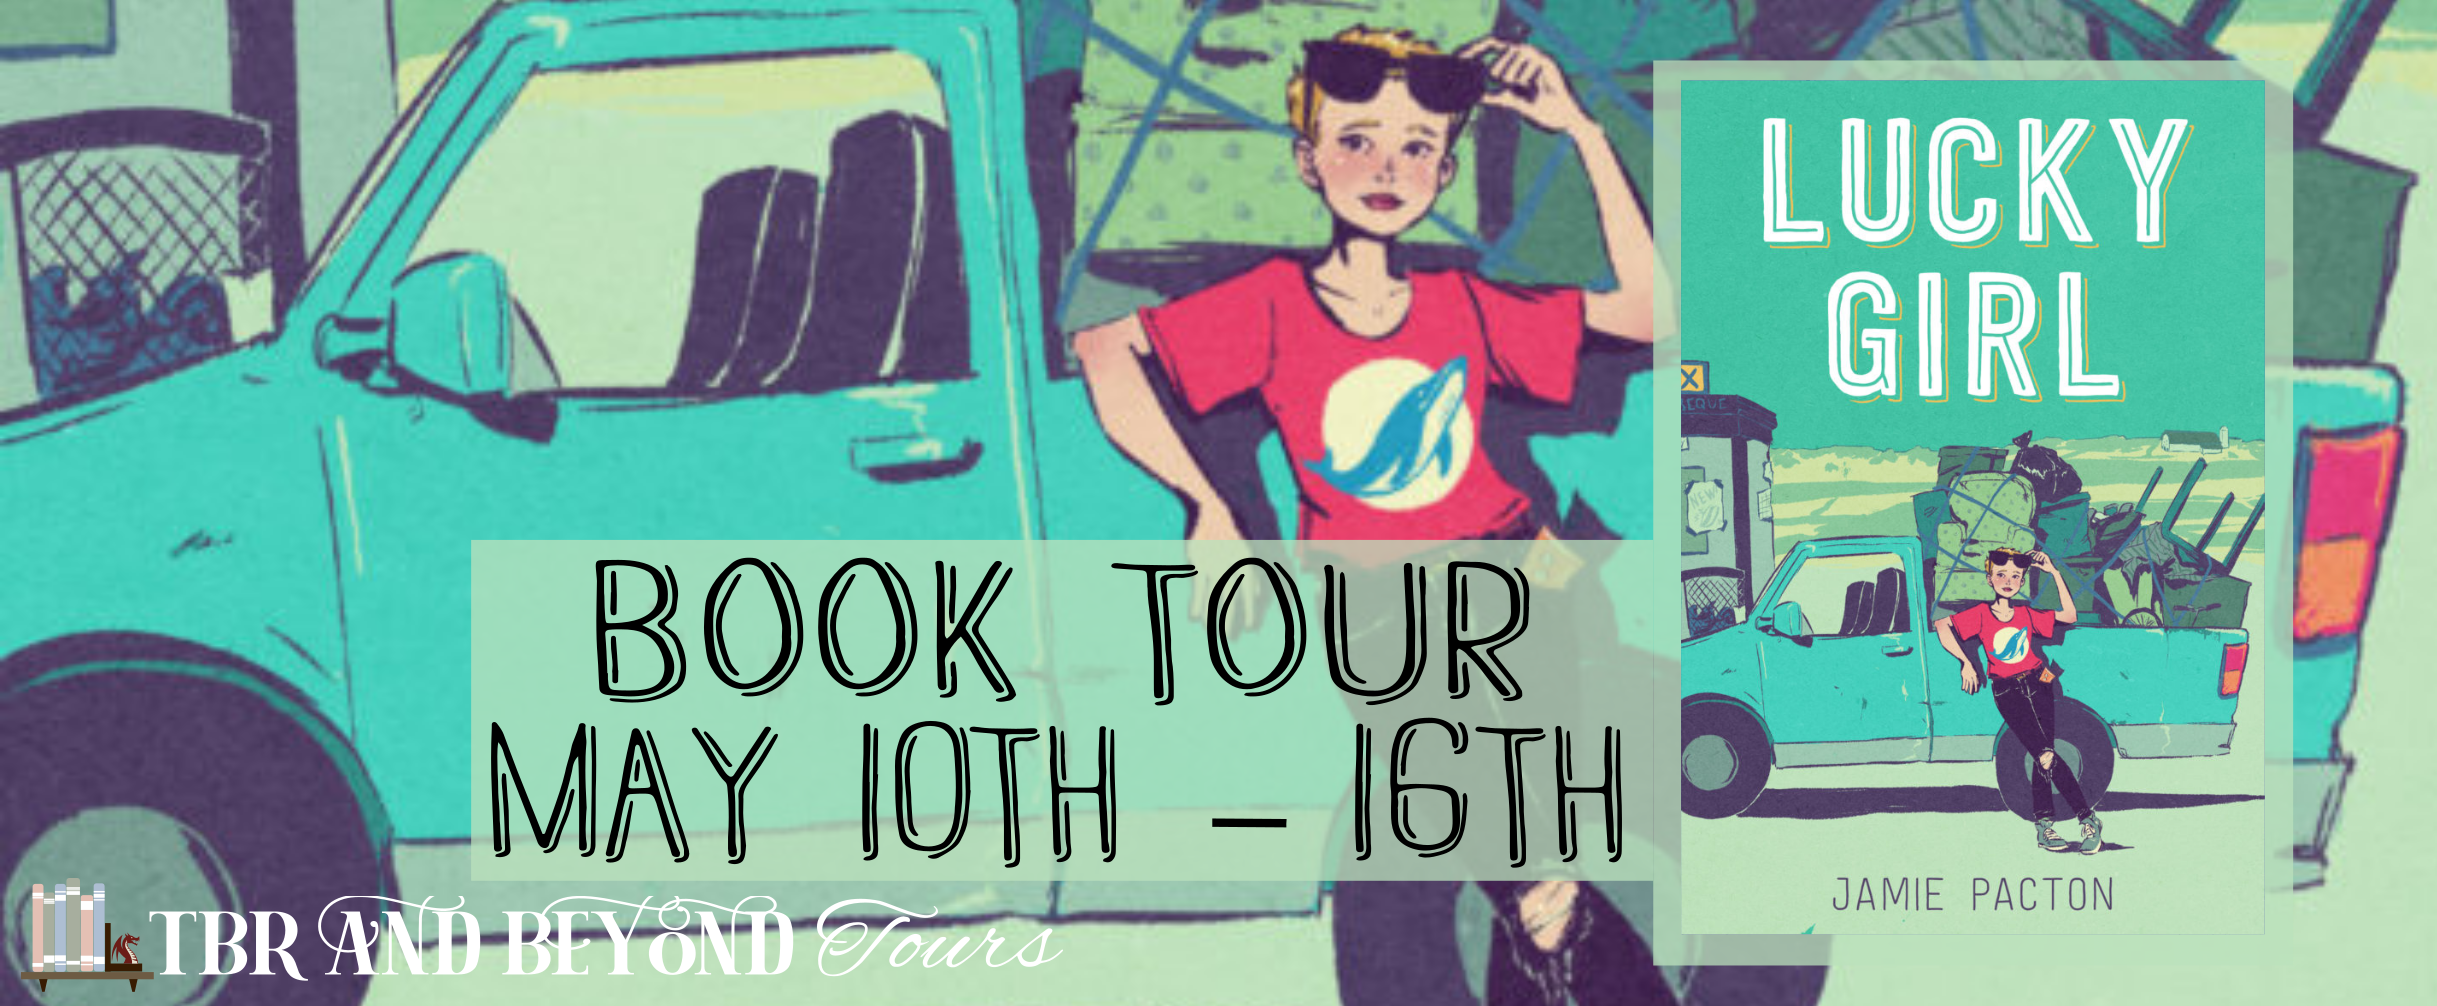 Blog Tour: Lucky Girl by Jamie Pacton (Review + Giveaway!)